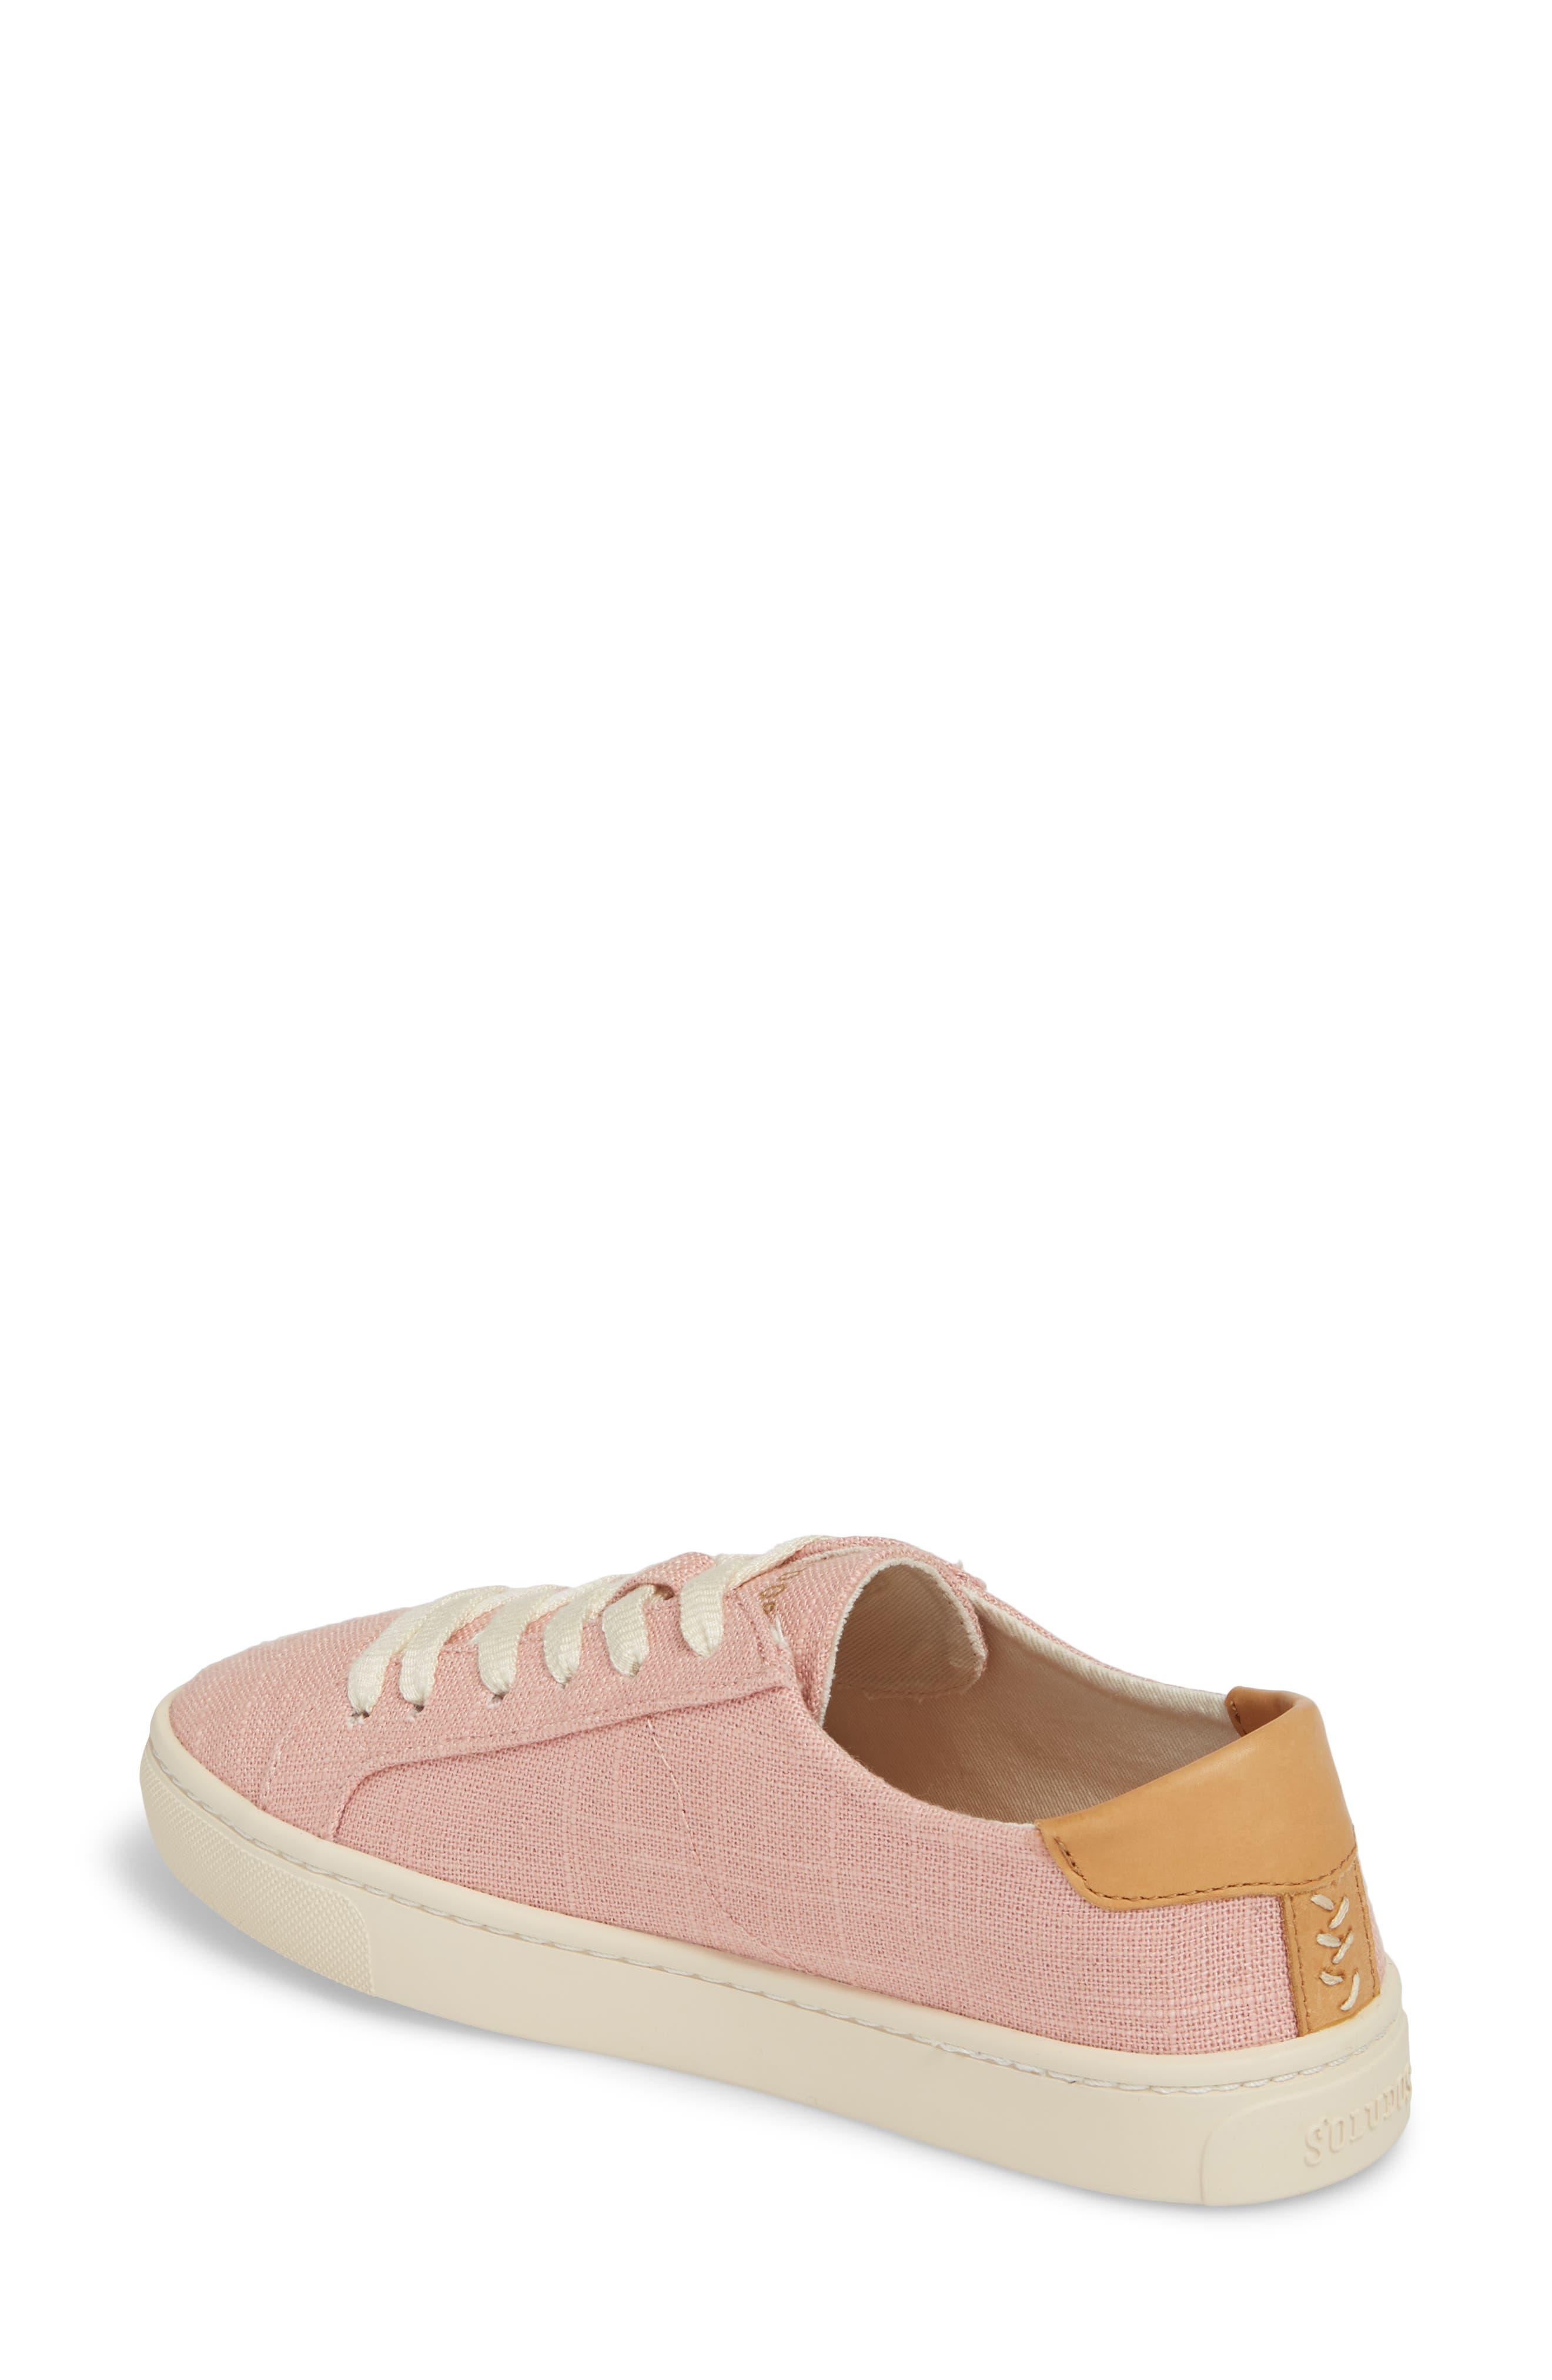 Ibiza Sneaker,                             Alternate thumbnail 2, color,                             Dusty Rose Fabric